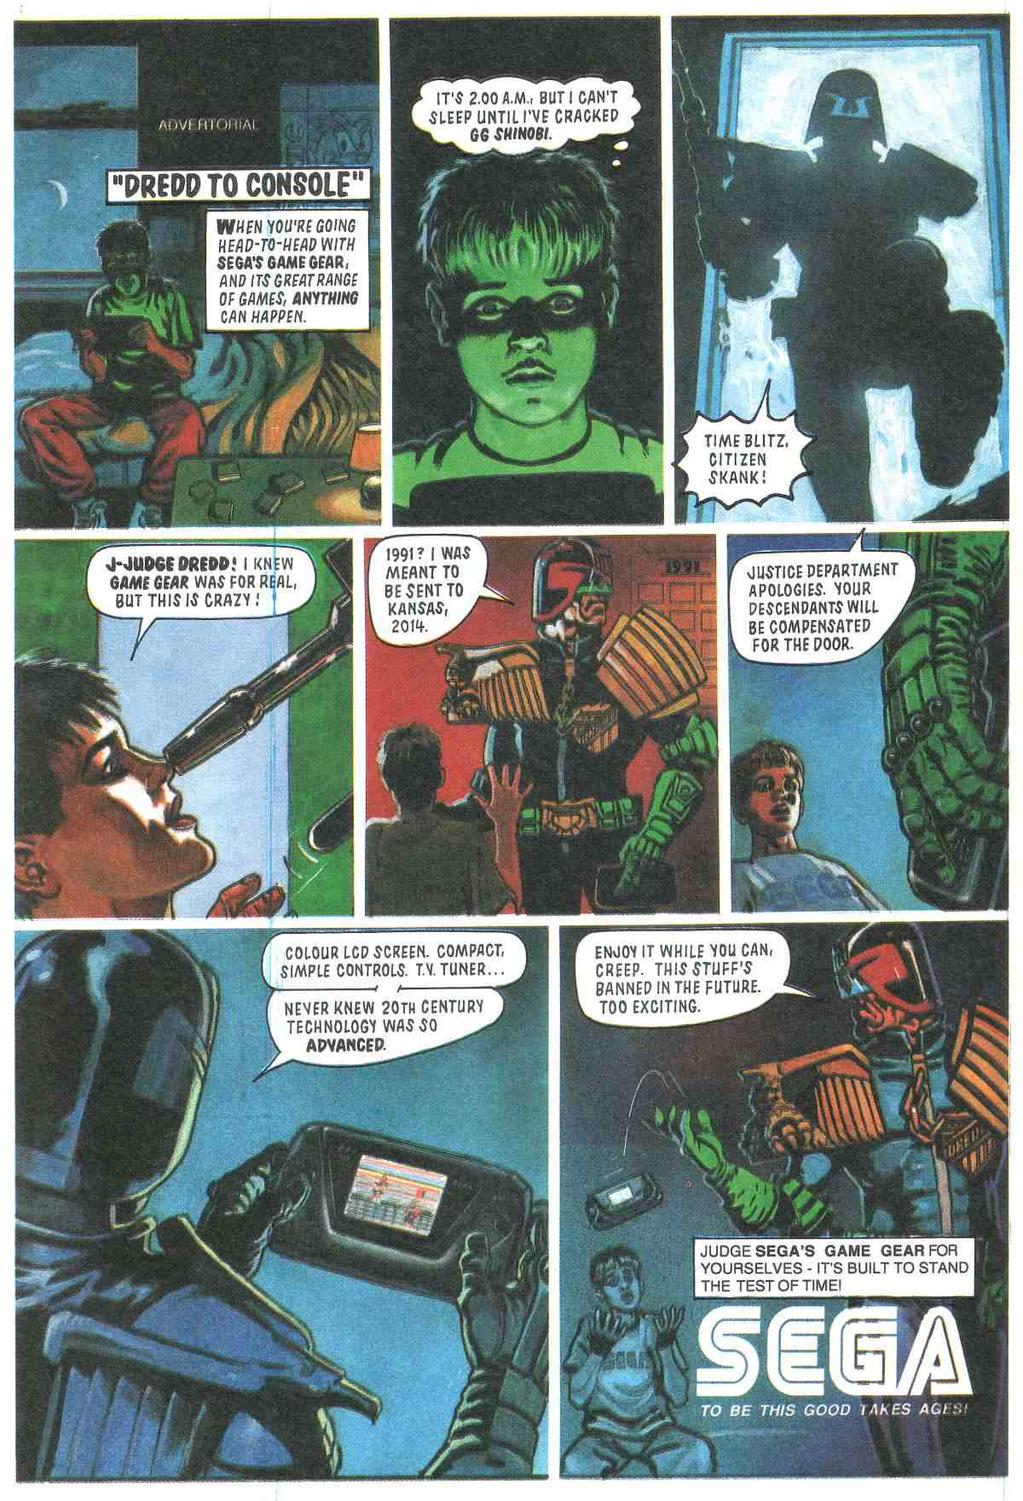 19a sega game gear ad judge dredd know your meme